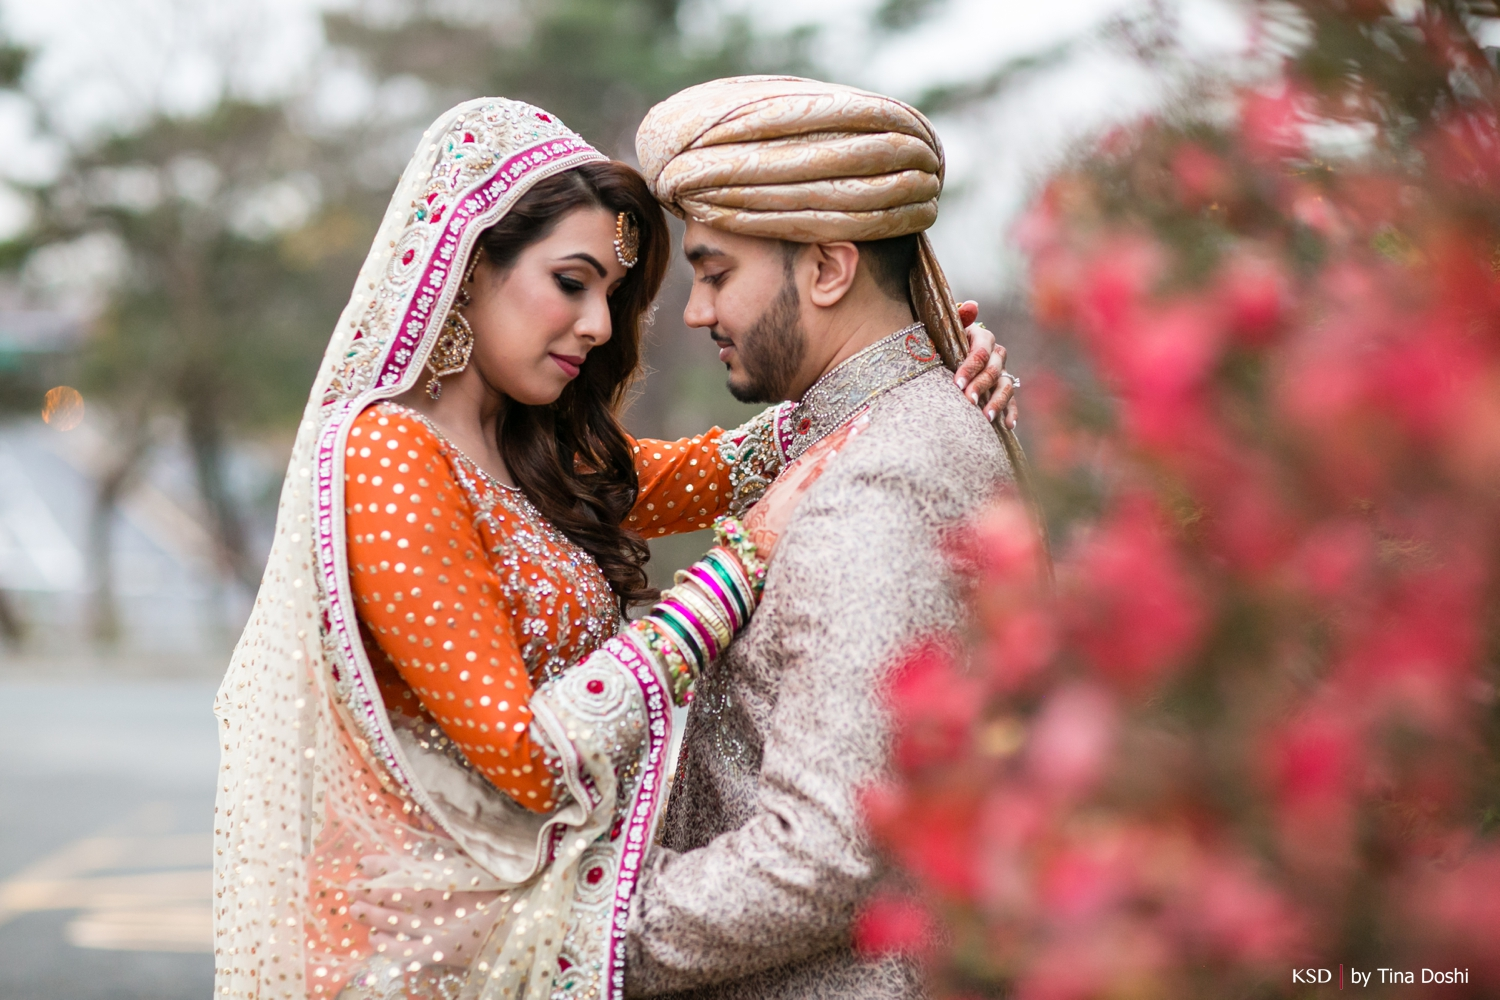 nj_south_asian_wedding_0023